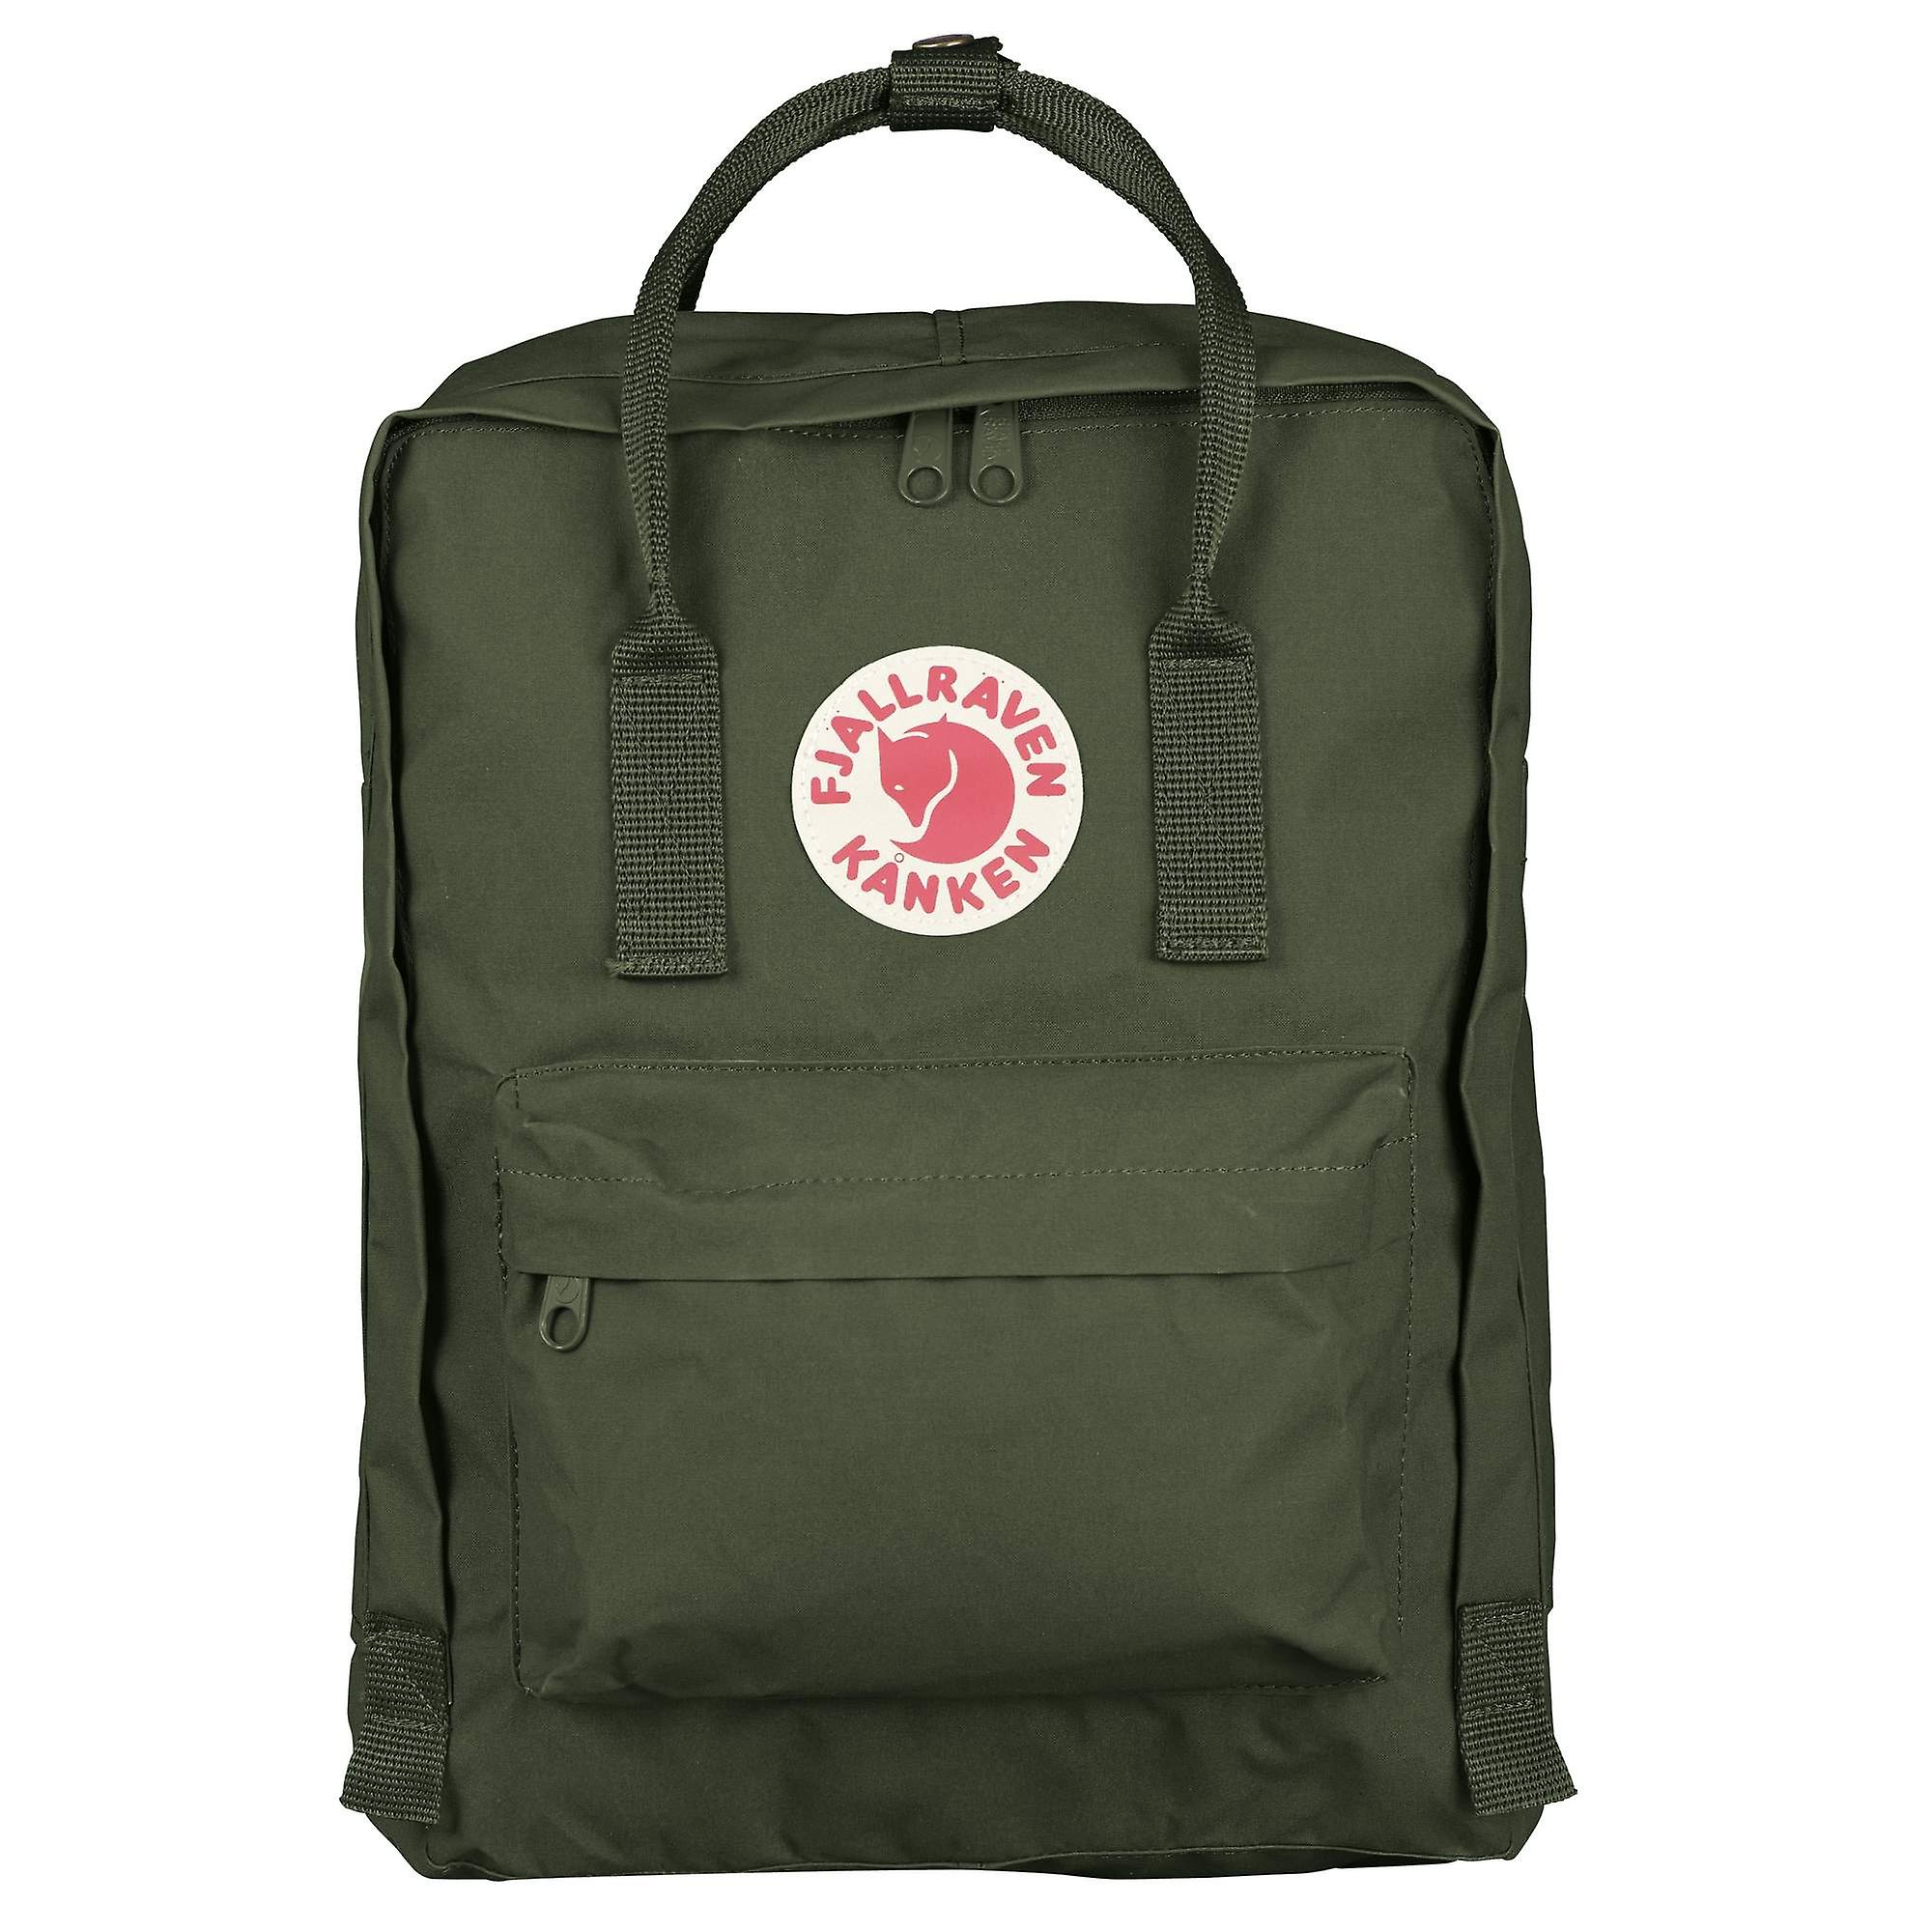 3d67b61403a8 Fjallraven - Kanken Classic Backpack for Everyday - Forest Green ...